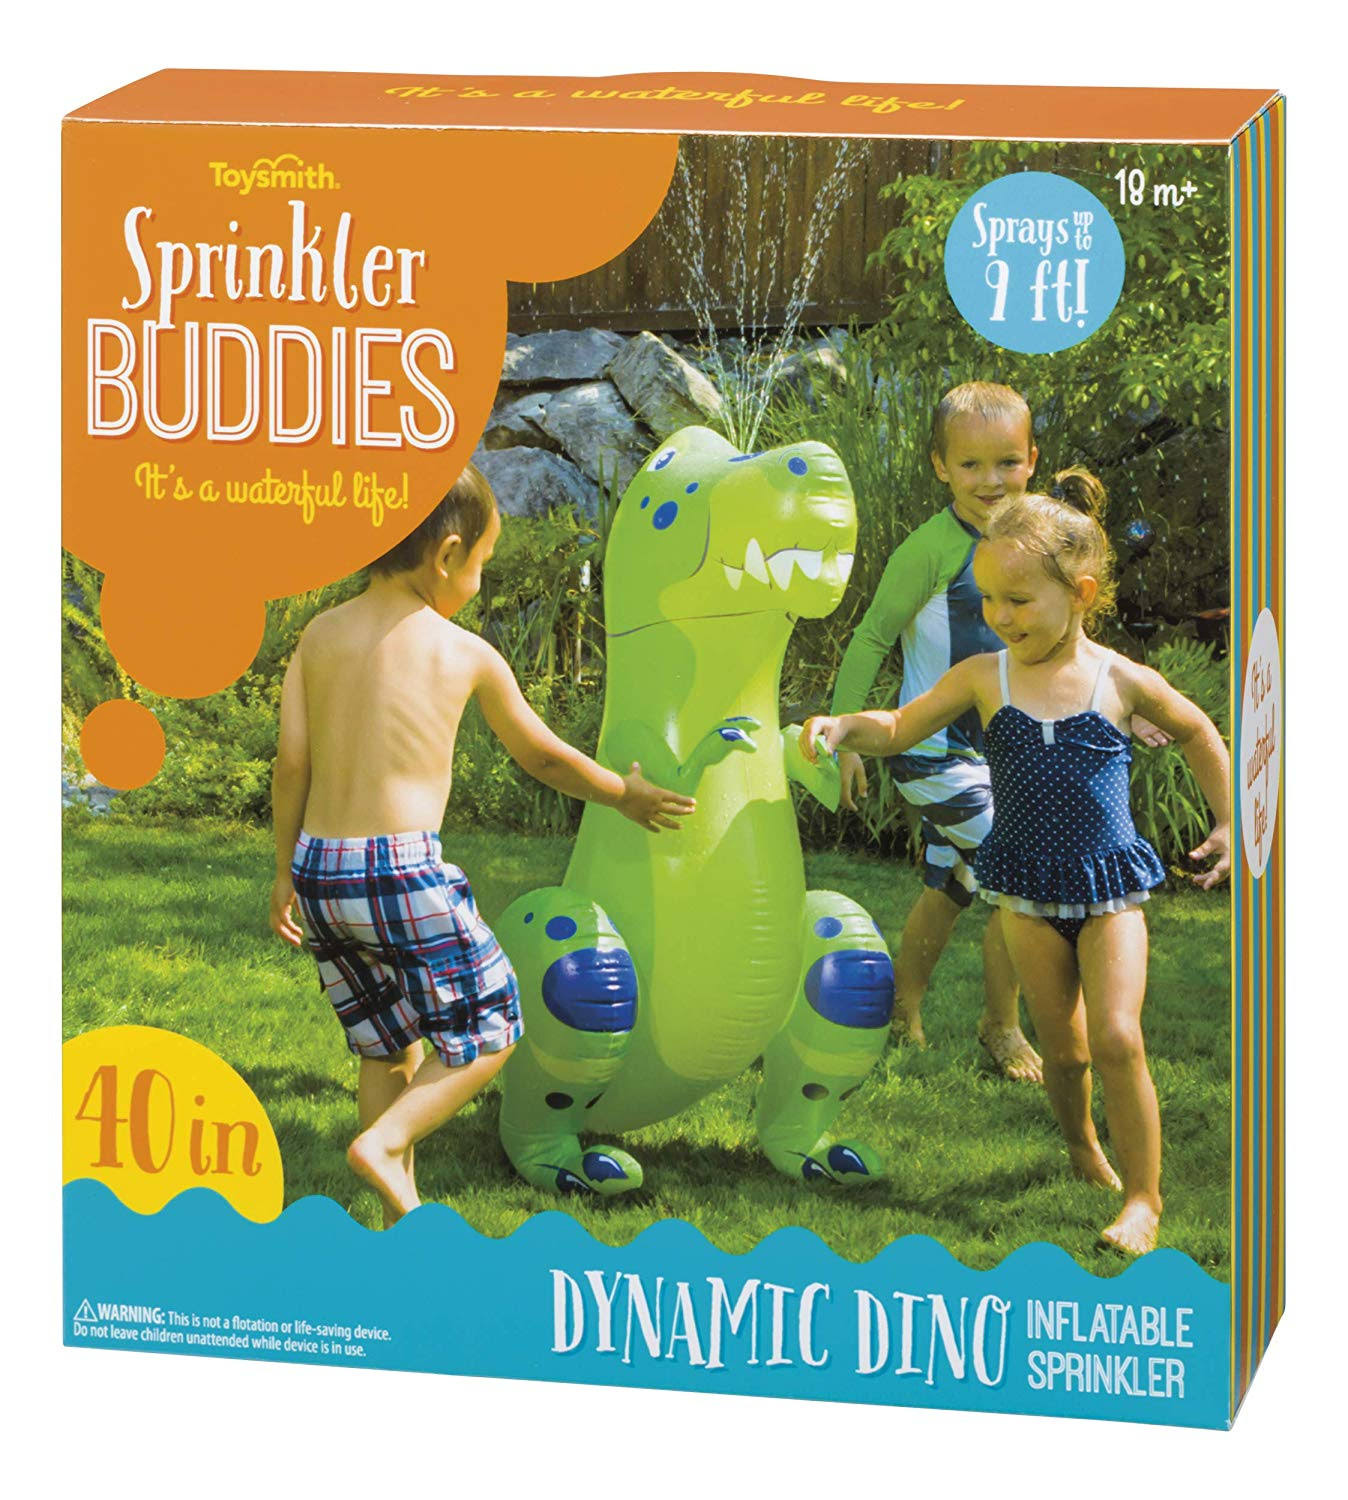 Toysmith Sprinkler Buddies Dynamic Dino Inflatable Outdoor Sprinkler